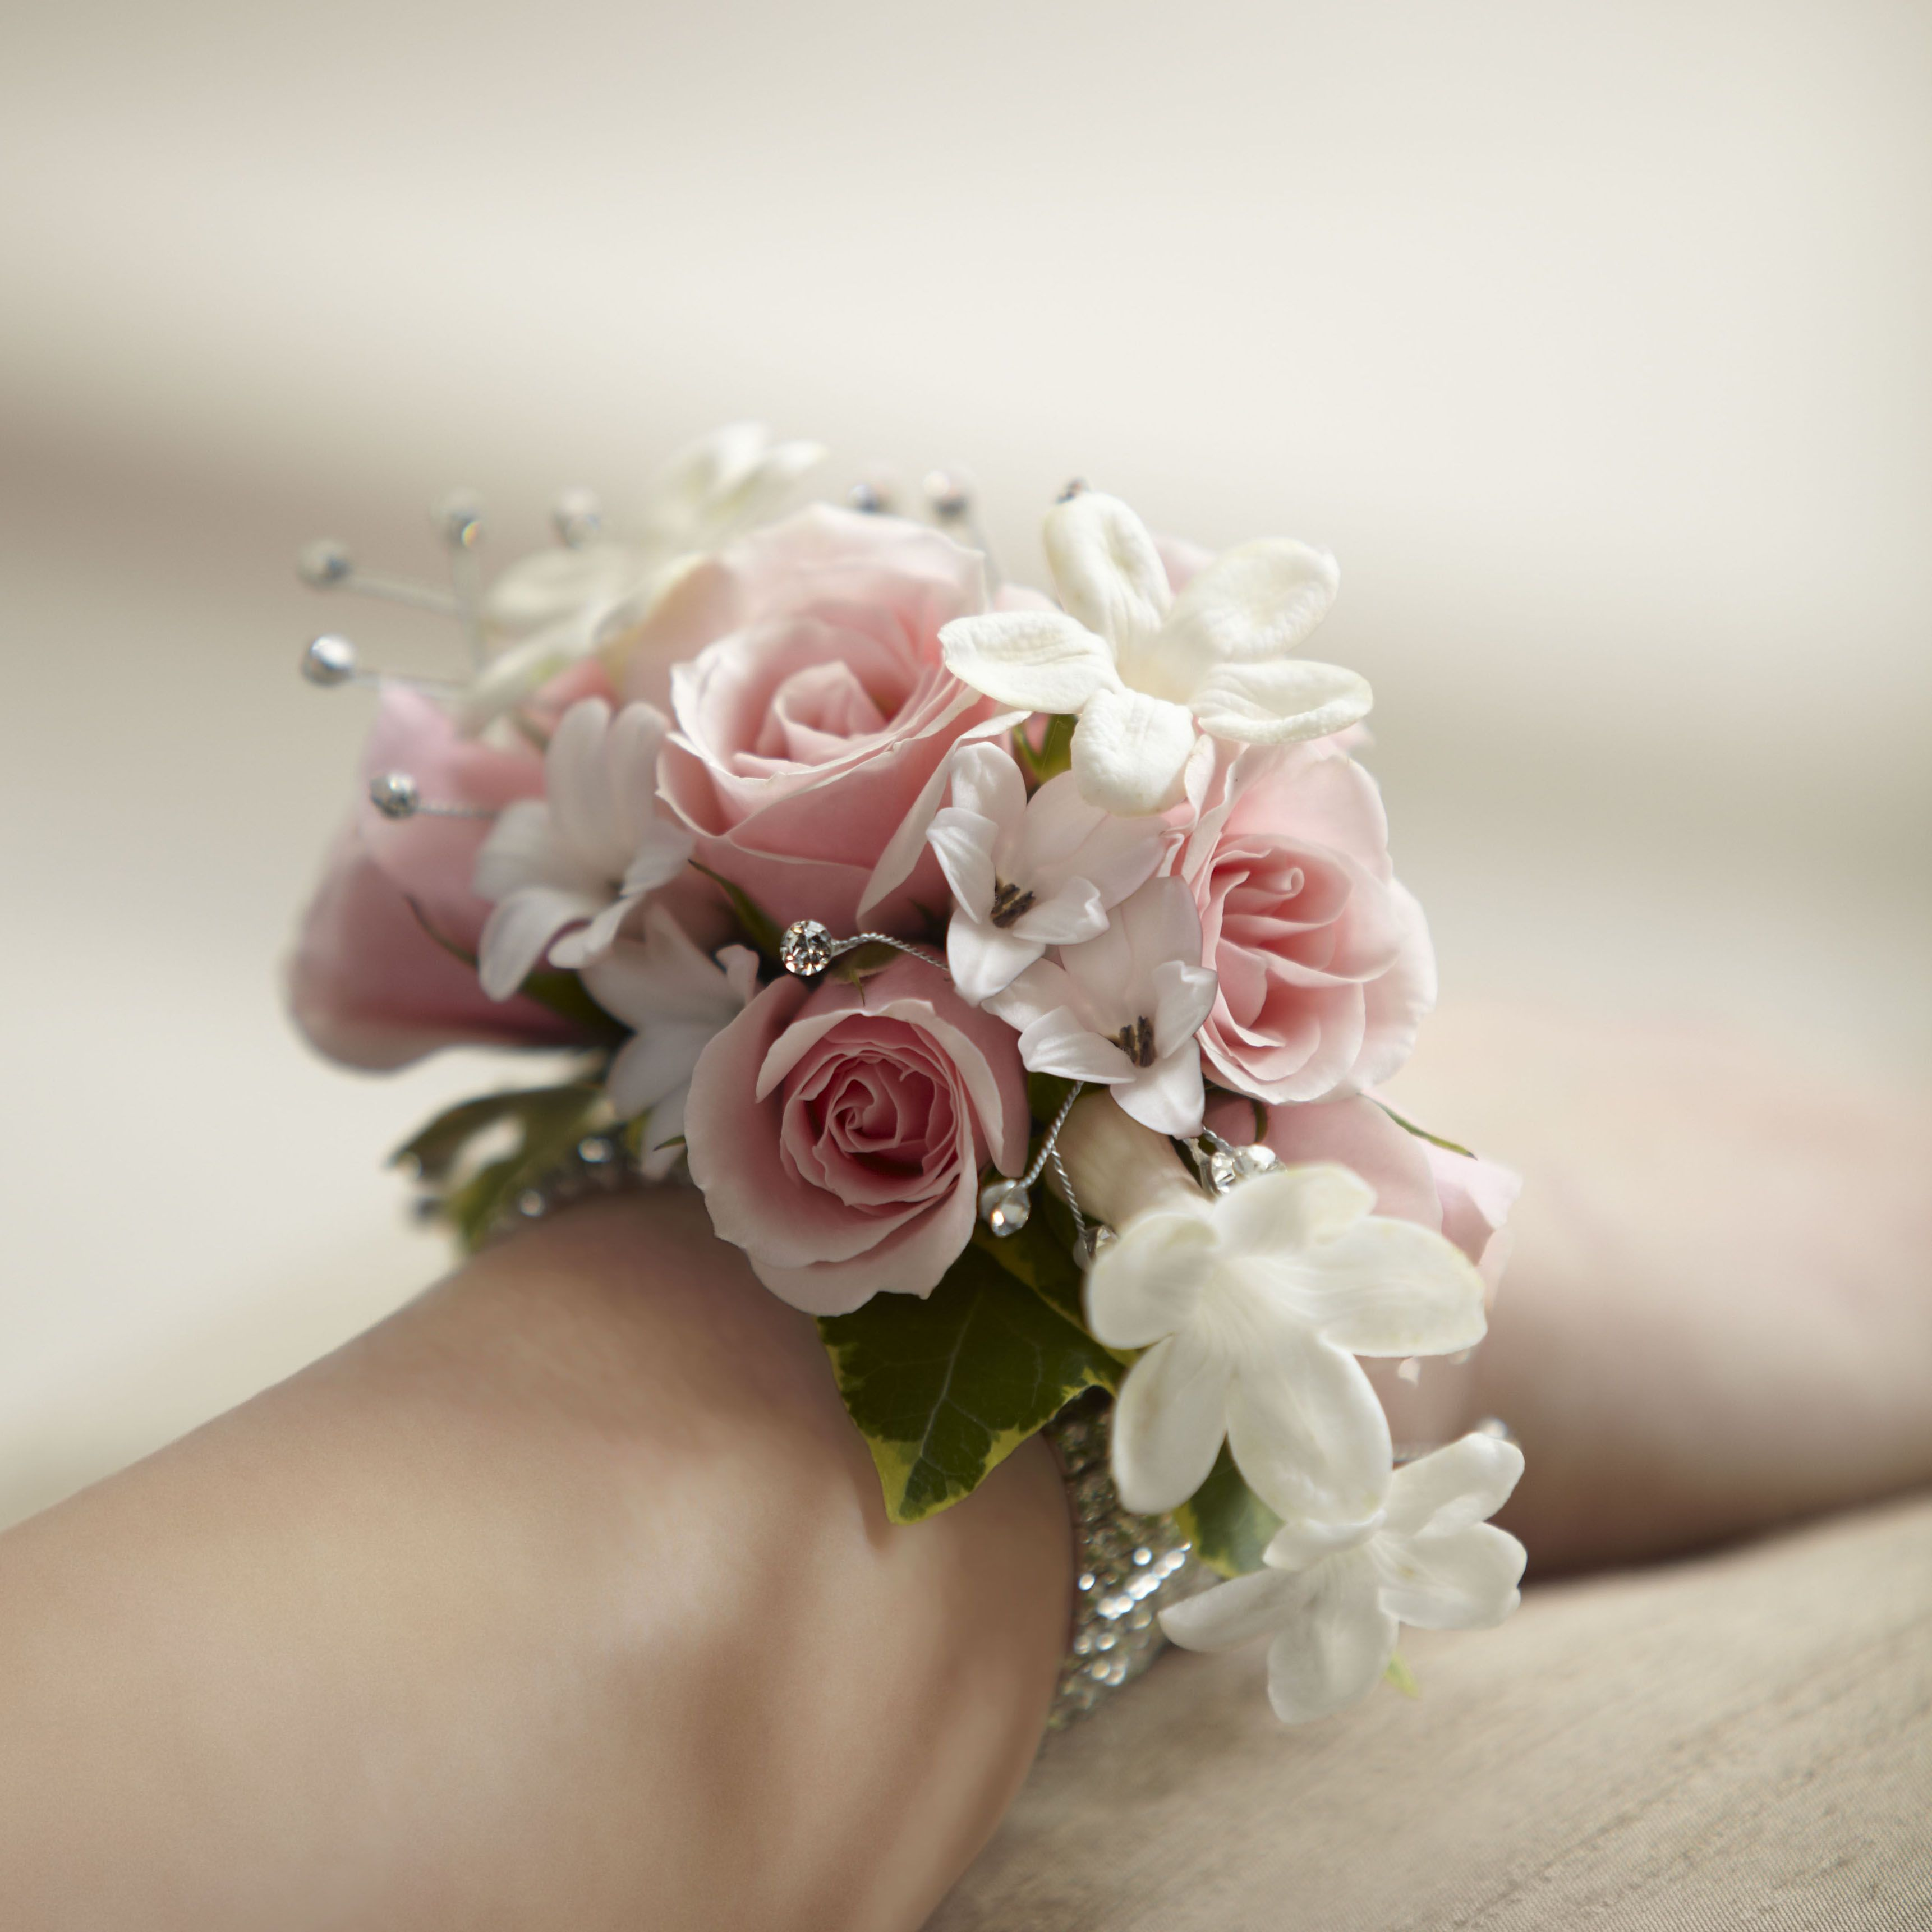 Leslie s corsage instead of bouquet but in our colors flowers Love that